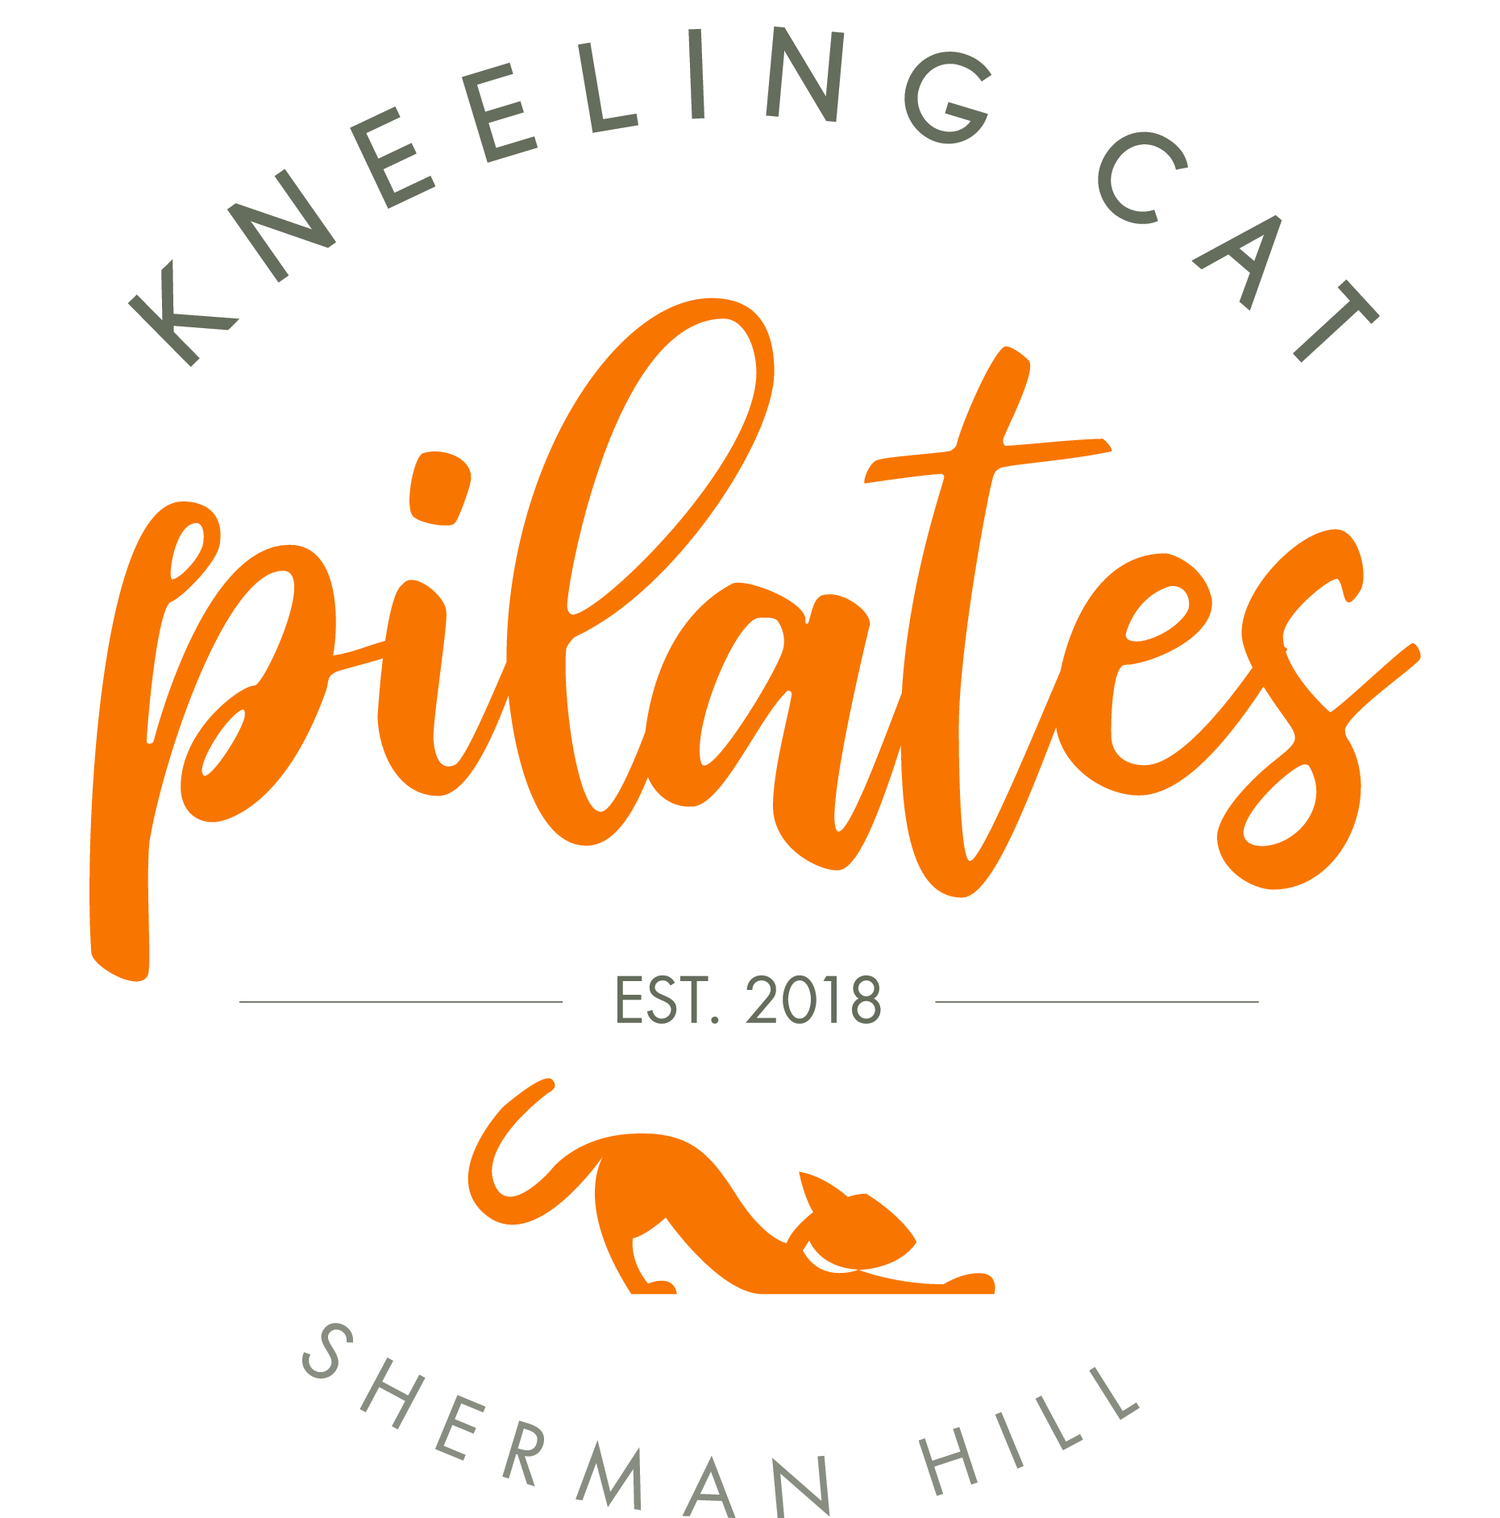 Kneeling Cat Pilates